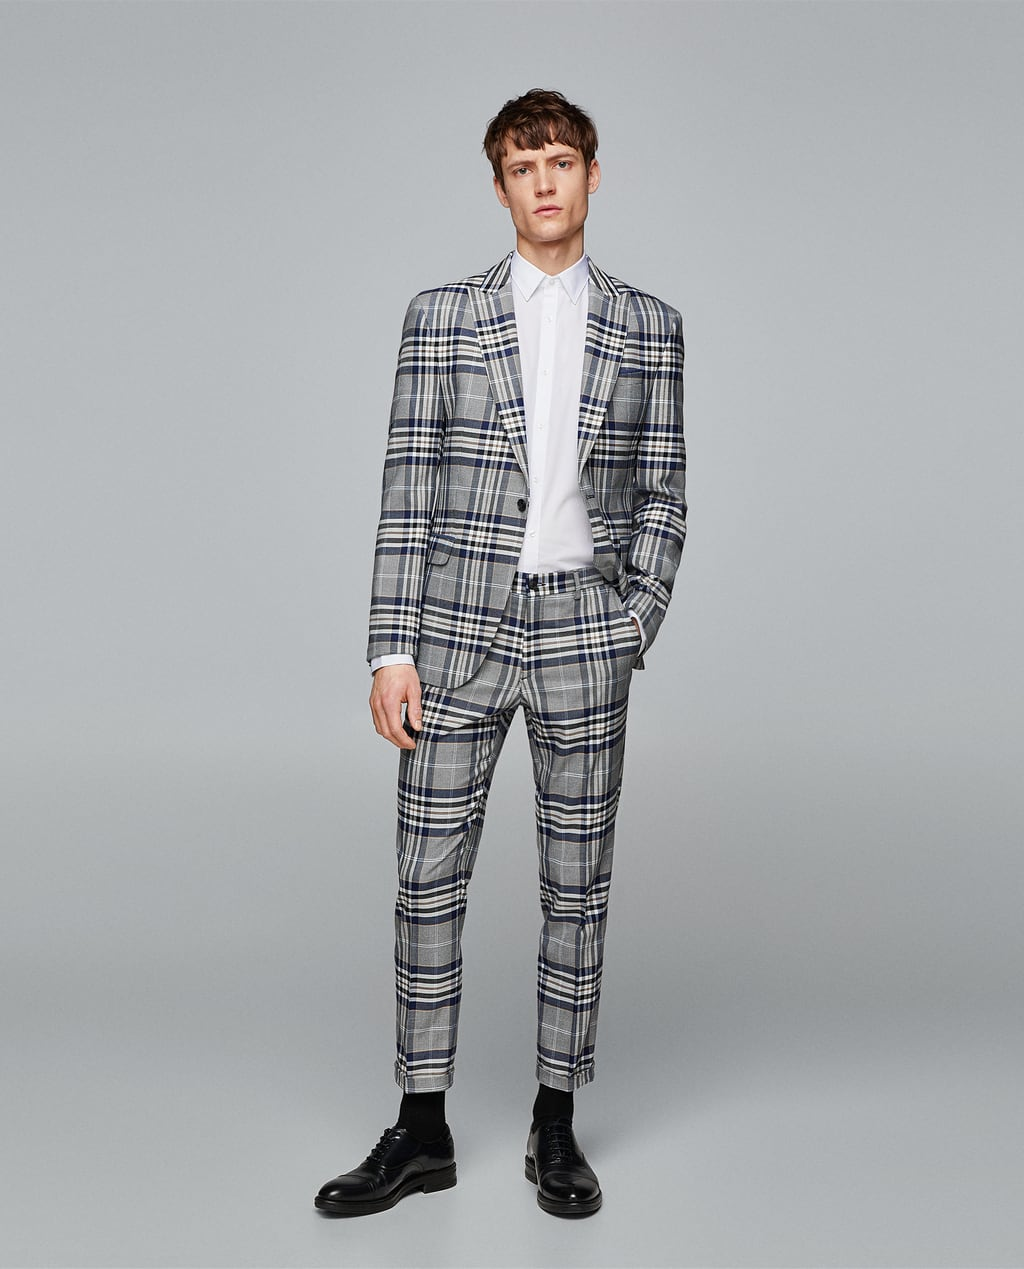 Checked blazer with peak lapels and long sleeves. Features two front flap pockets, one besom pocket at the chest with contrasting pocket square and lining with an inside pocket. Double back vents, buttoned cuffs and button fastening in the front.